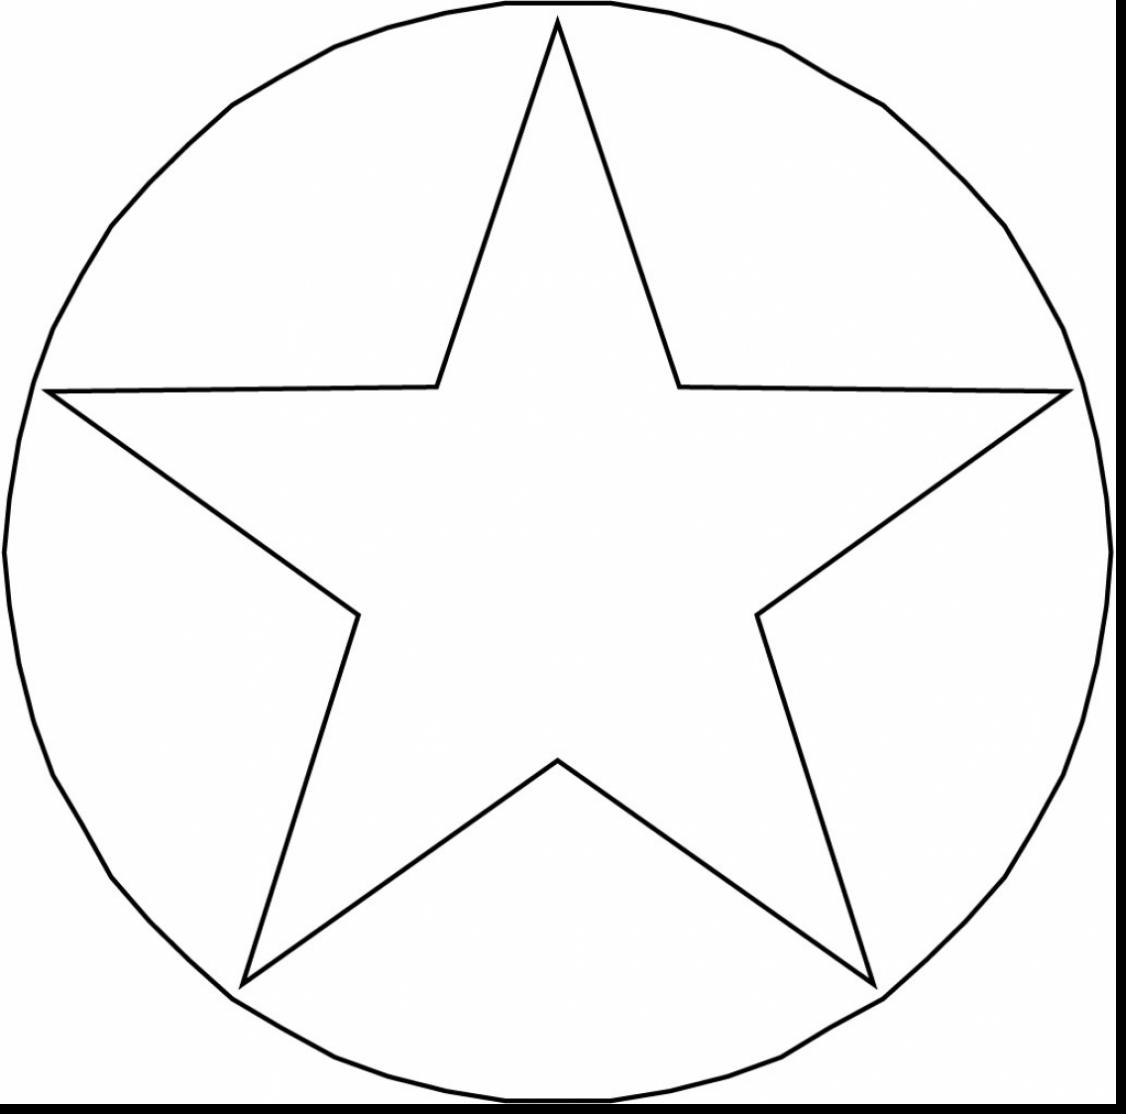 Star Shape Drawing at GetDrawings.com | Free for personal use Star ...